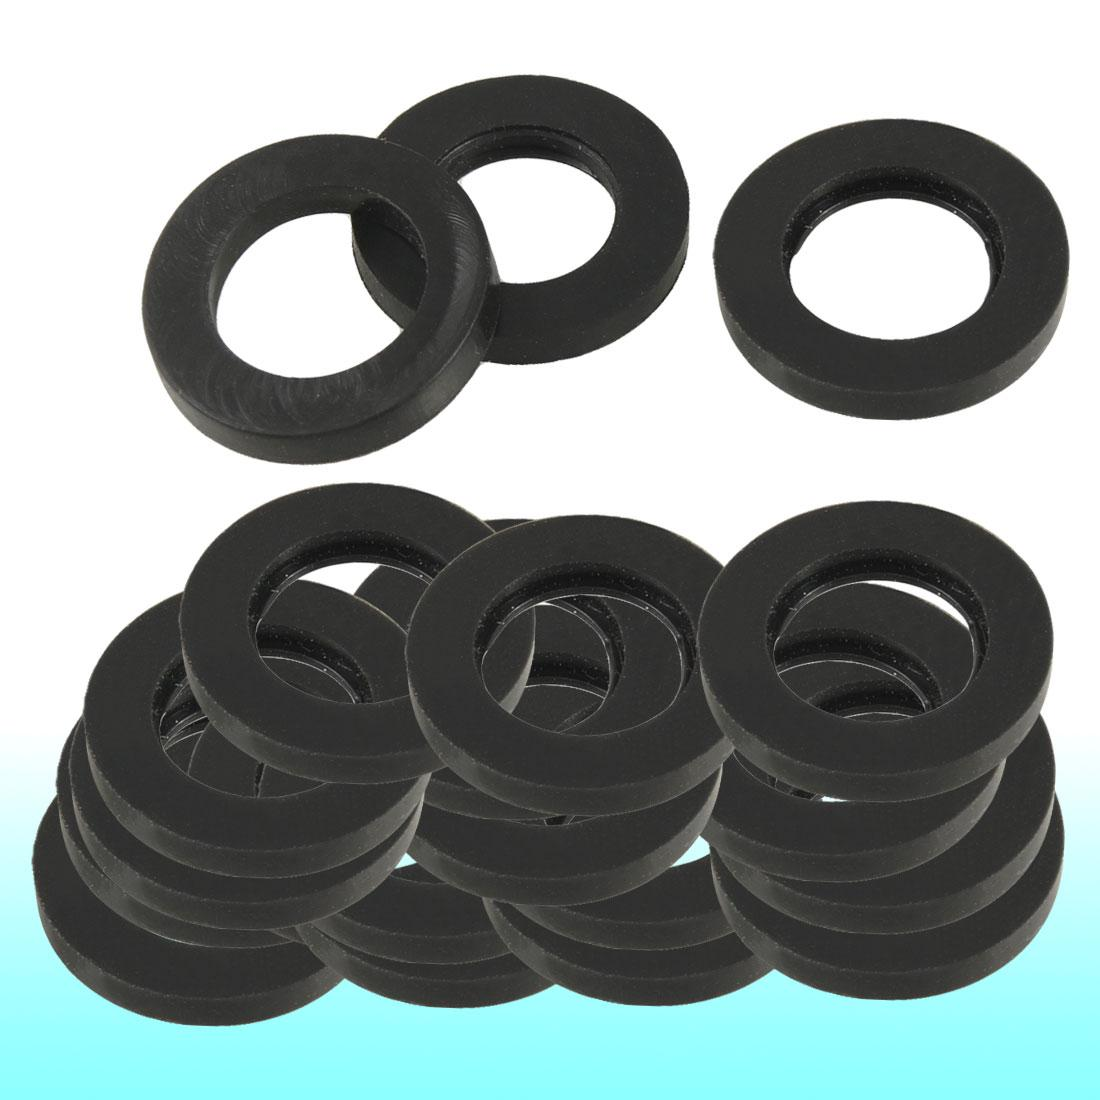 2018 19mm Outside Dia Rubber Gasket Washer Seal Rings From Ux_mall ...